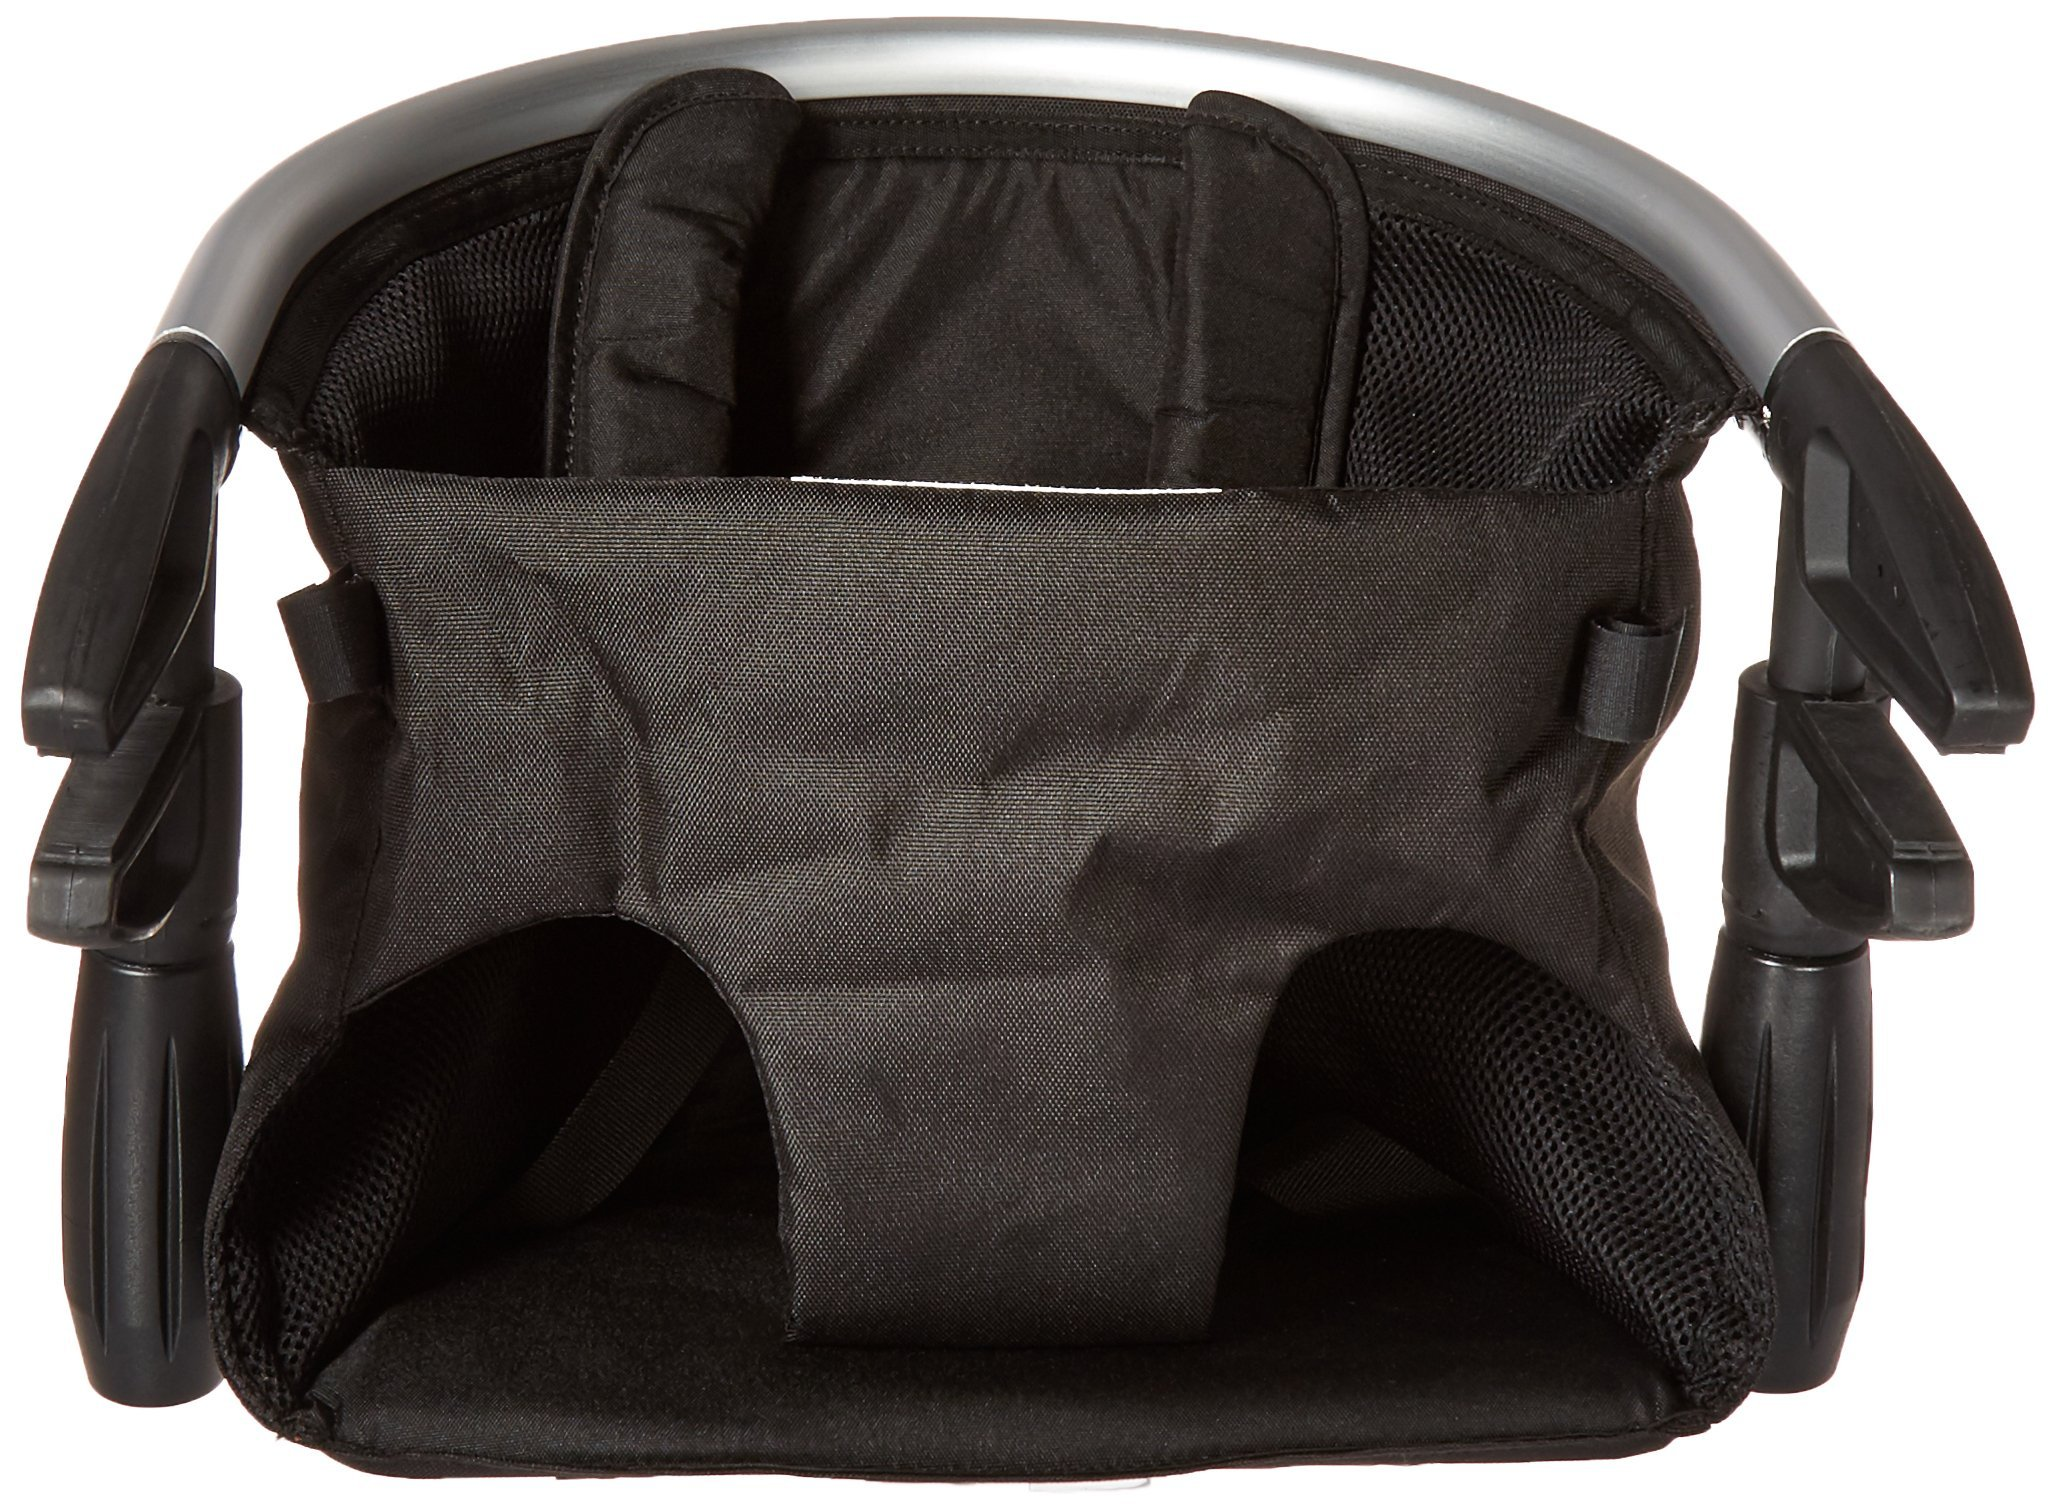 phil&teds Lobster Clip-On Highchair, Black - Award Winning Portable High Chair - Includes Carry Bag and Dishwasher Safe Tray - Hygienic and Easy Clean - Safe and Secure - Ideal For Home and Travel by phil&teds (Image #2)